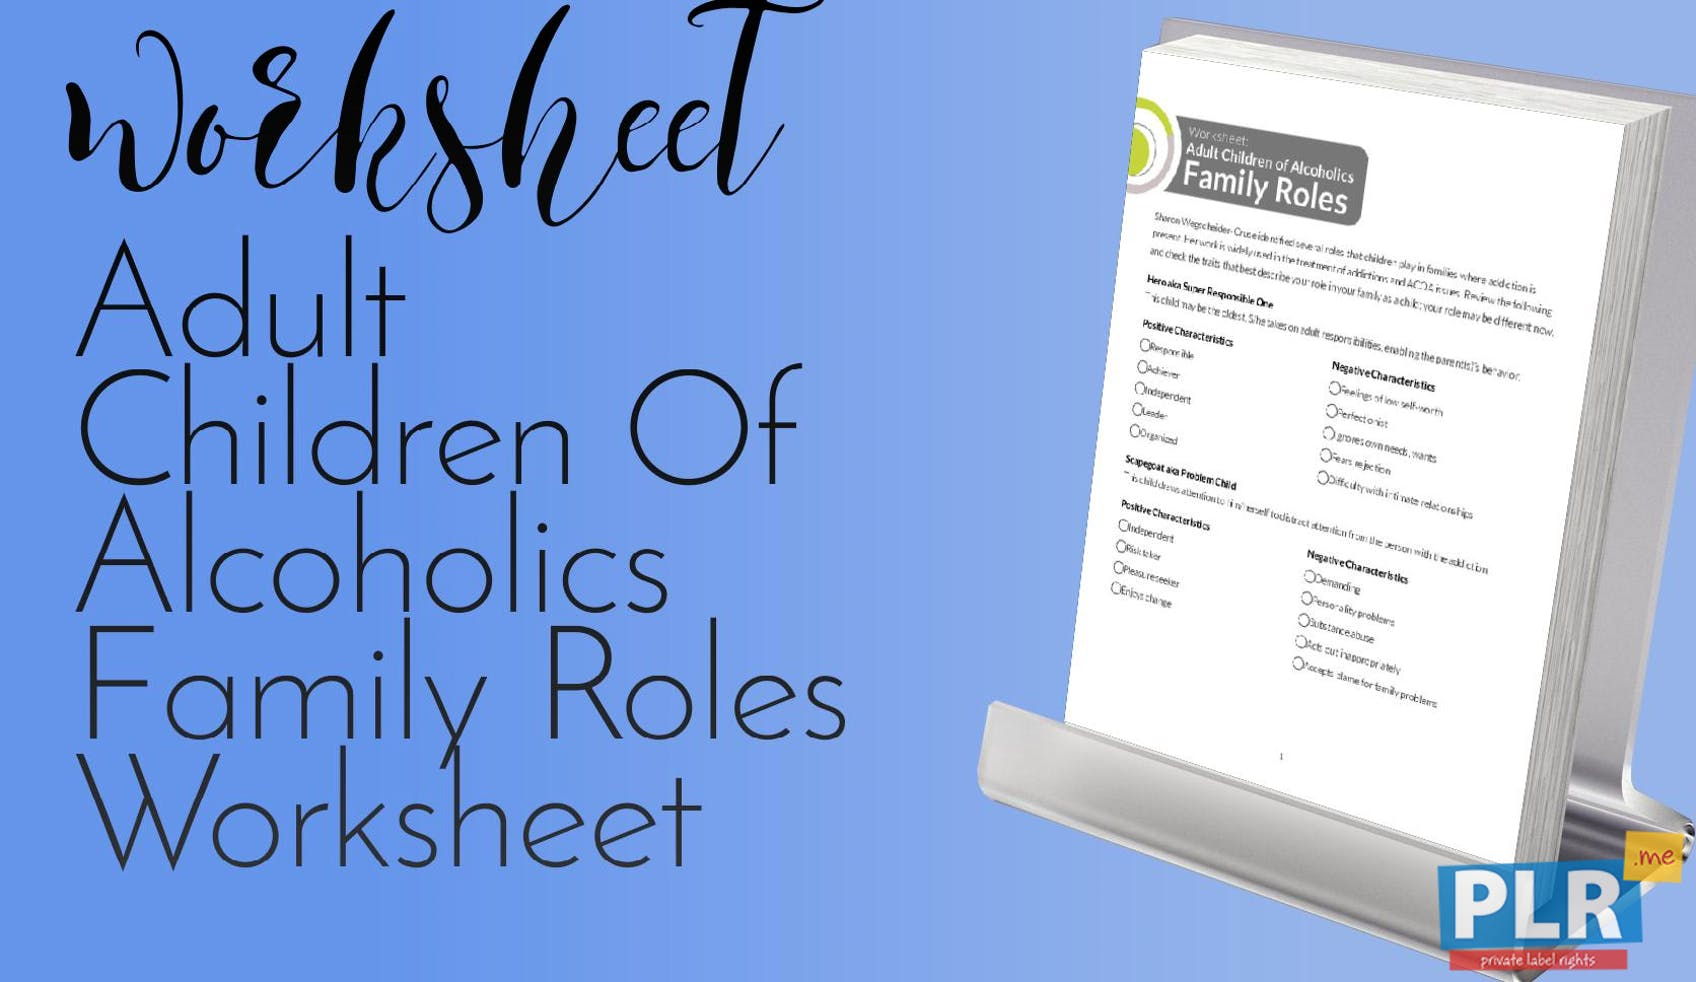 Plr Worksheets Adult Children Of Alcoholics Family Roles